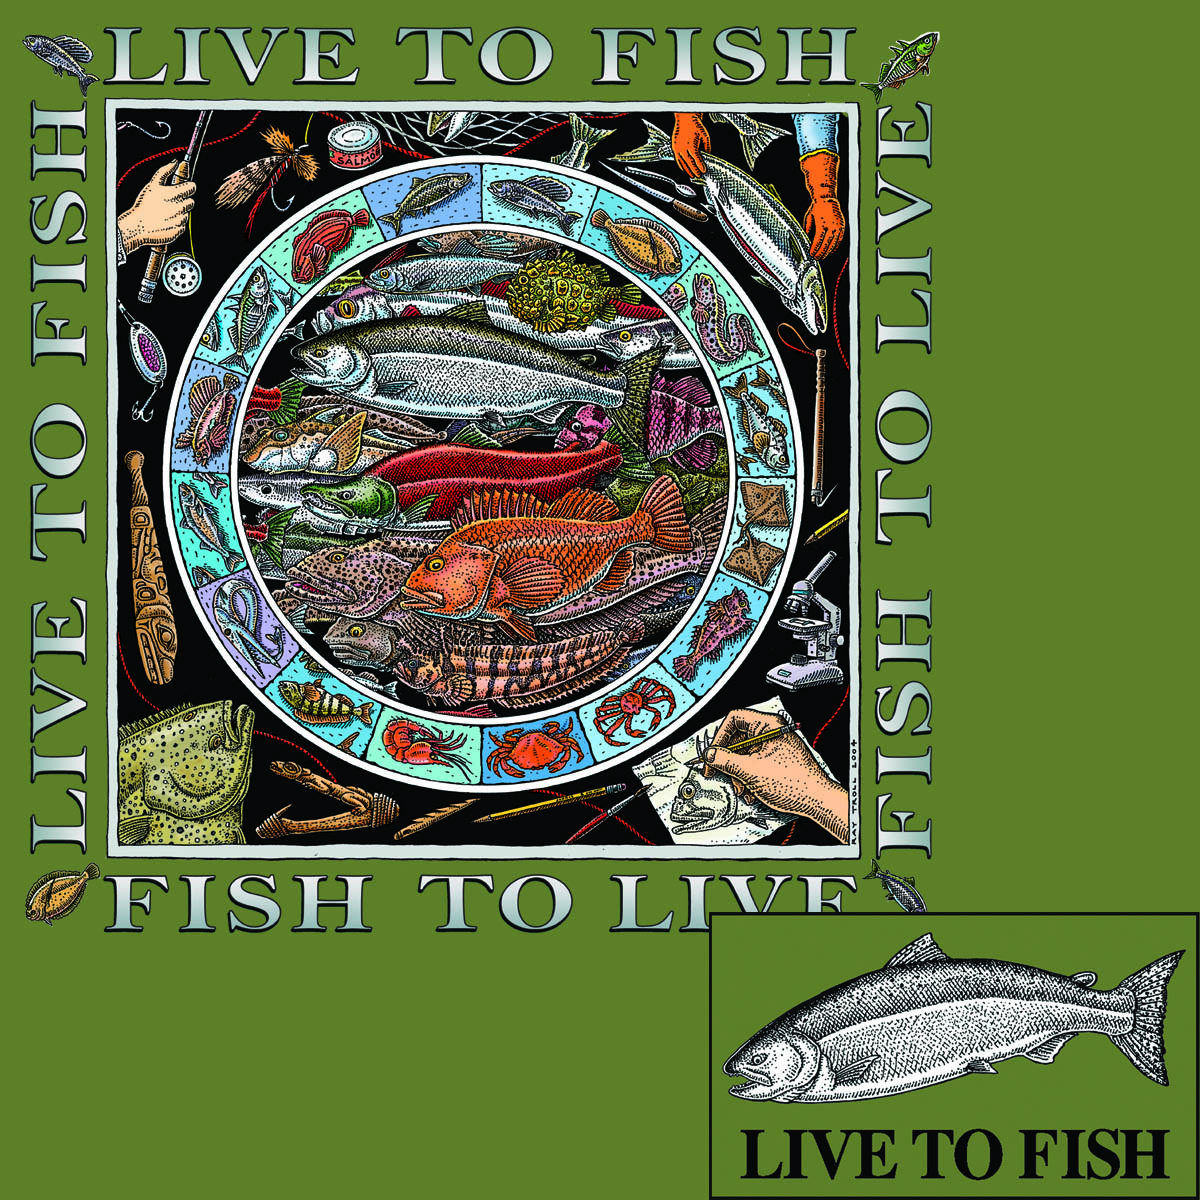 692 - Live To Fish